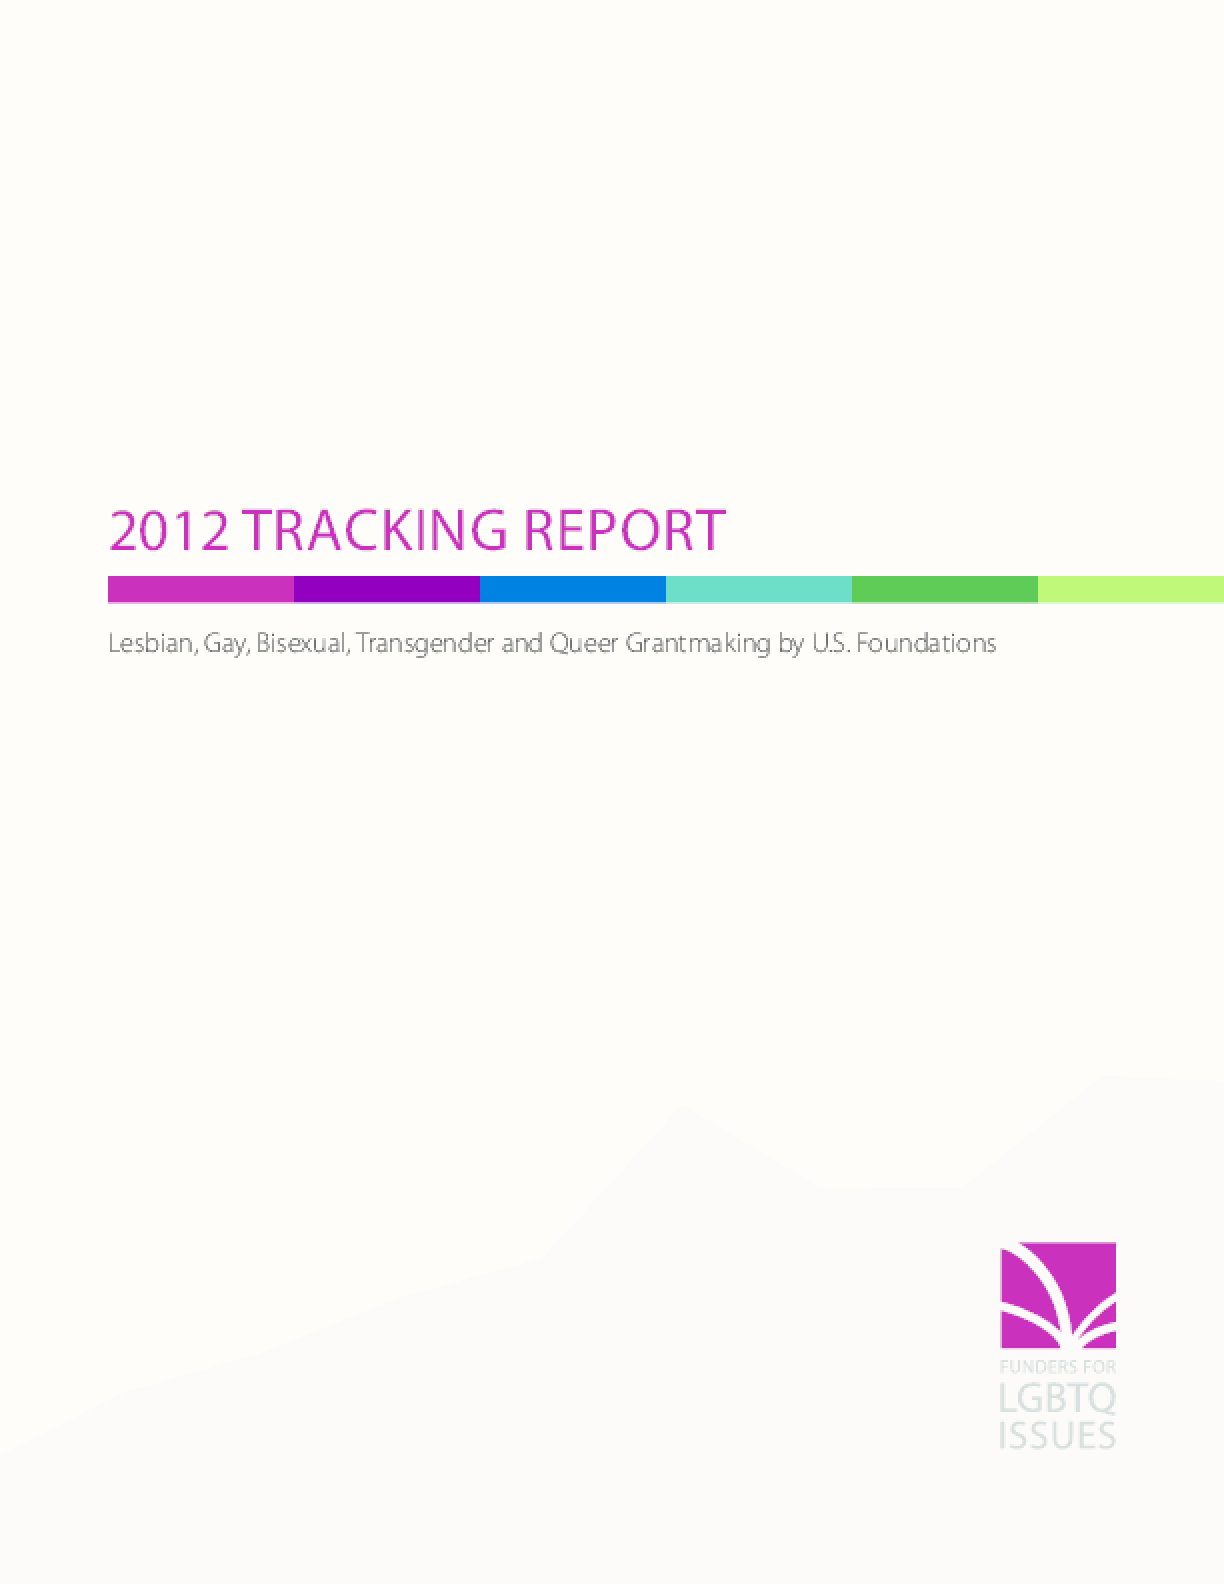 2012 Tracking Report: Lesbian, Gay, Bisexual, Transgender and Queer Grantmaking by U.S. Foundations